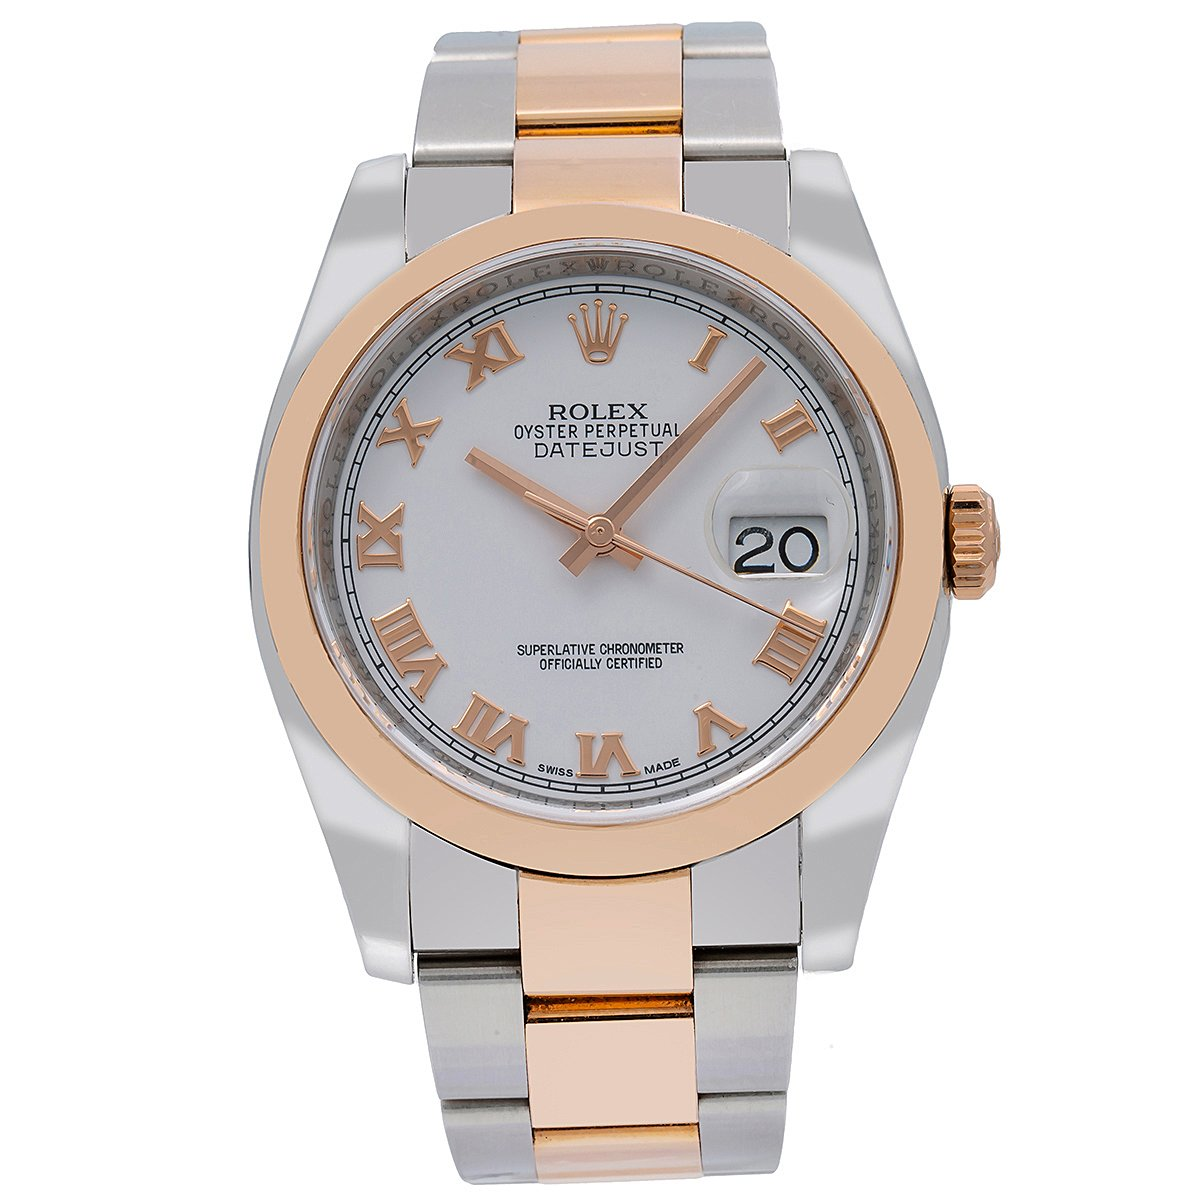 Rolex Datejust 116201 36MM White Dial With Two Tone Oyster Bracelet